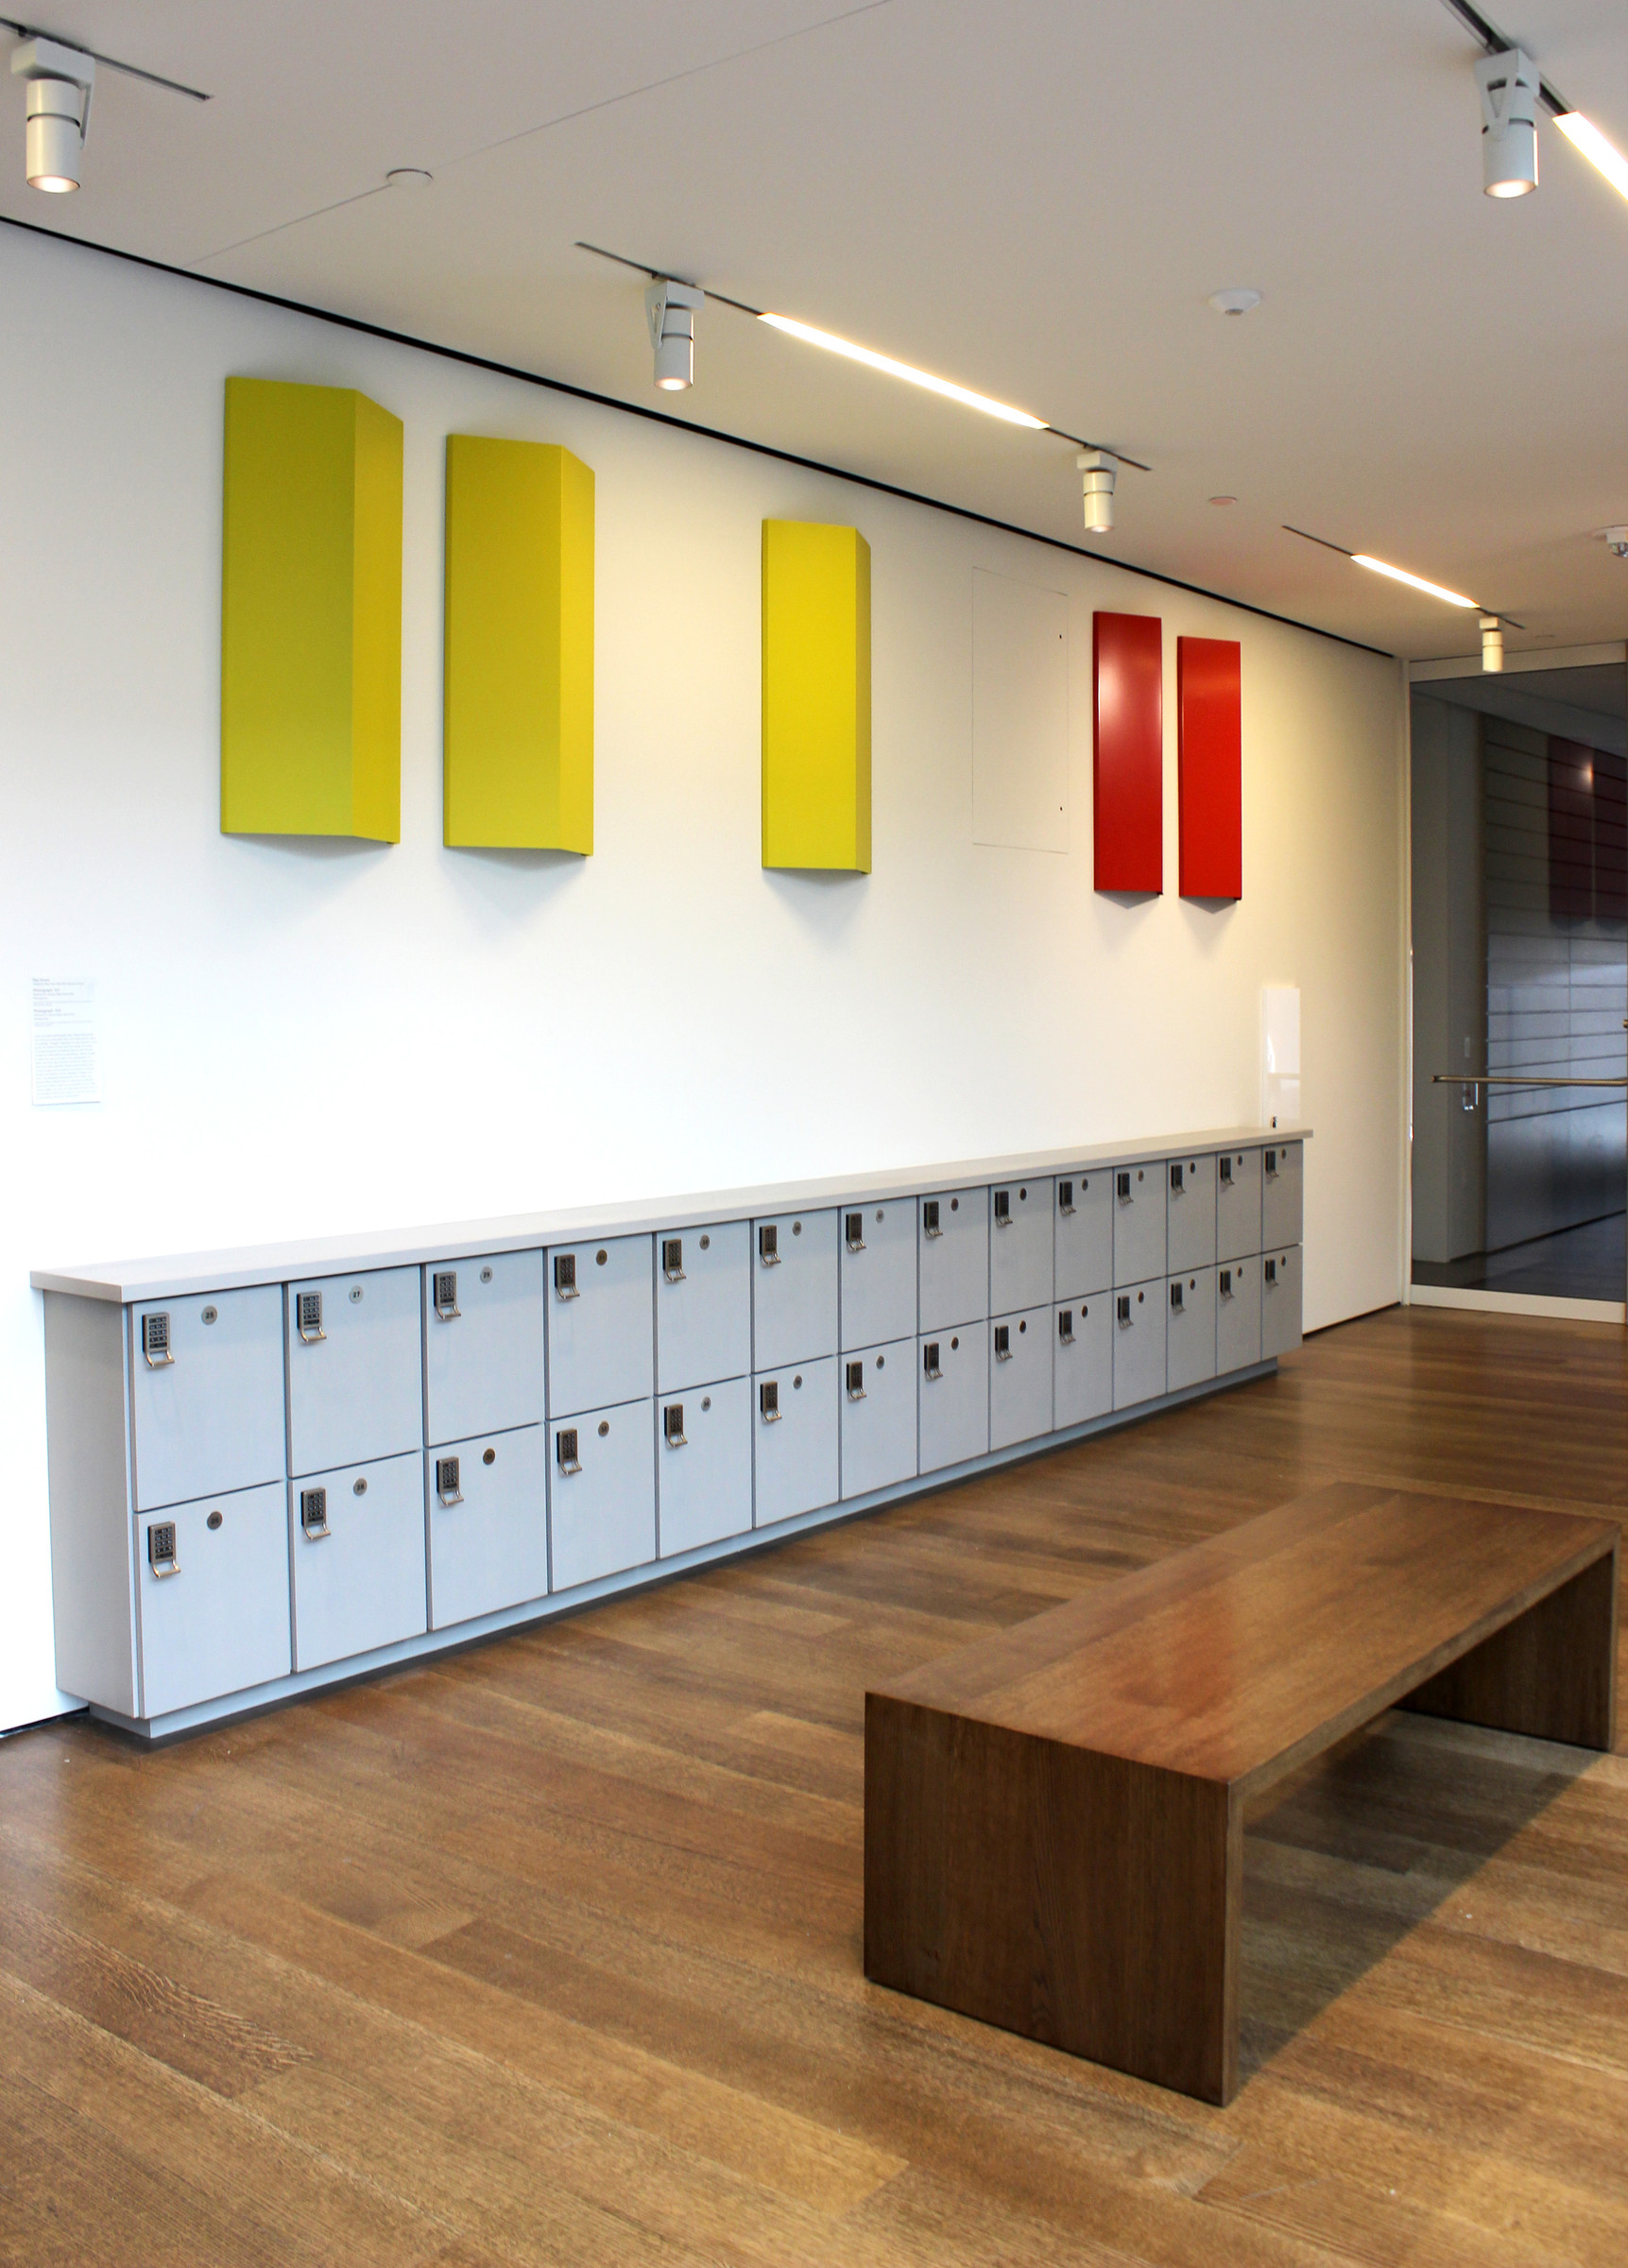 On a white wall, three identical, yellow-painted aluminum sheets are mounted next to two identical, red-painted aluminum sheets, each folded convexly. The folded rectangular sheets, mounted vertically and parallel to each other on the wall, are situated above a row of grey storage lockers. A wooden, rectangular bench stands in the foreground.